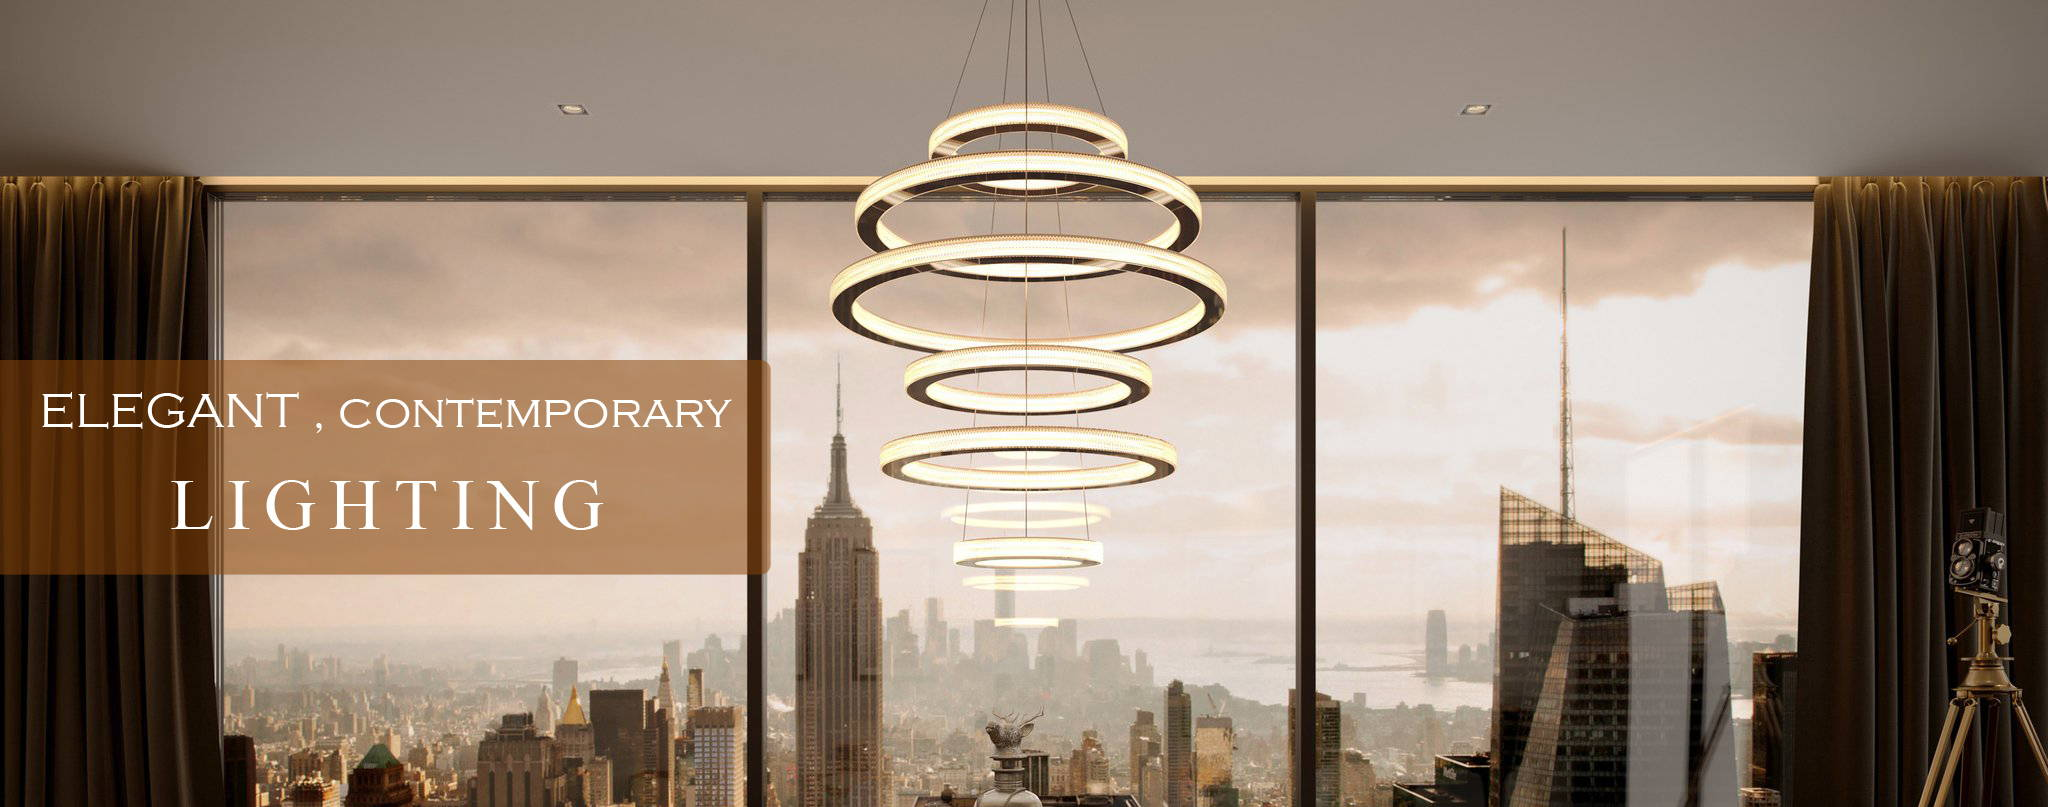 Modern Home Lights Led Chandeliers Pendant And Ceiling Lights